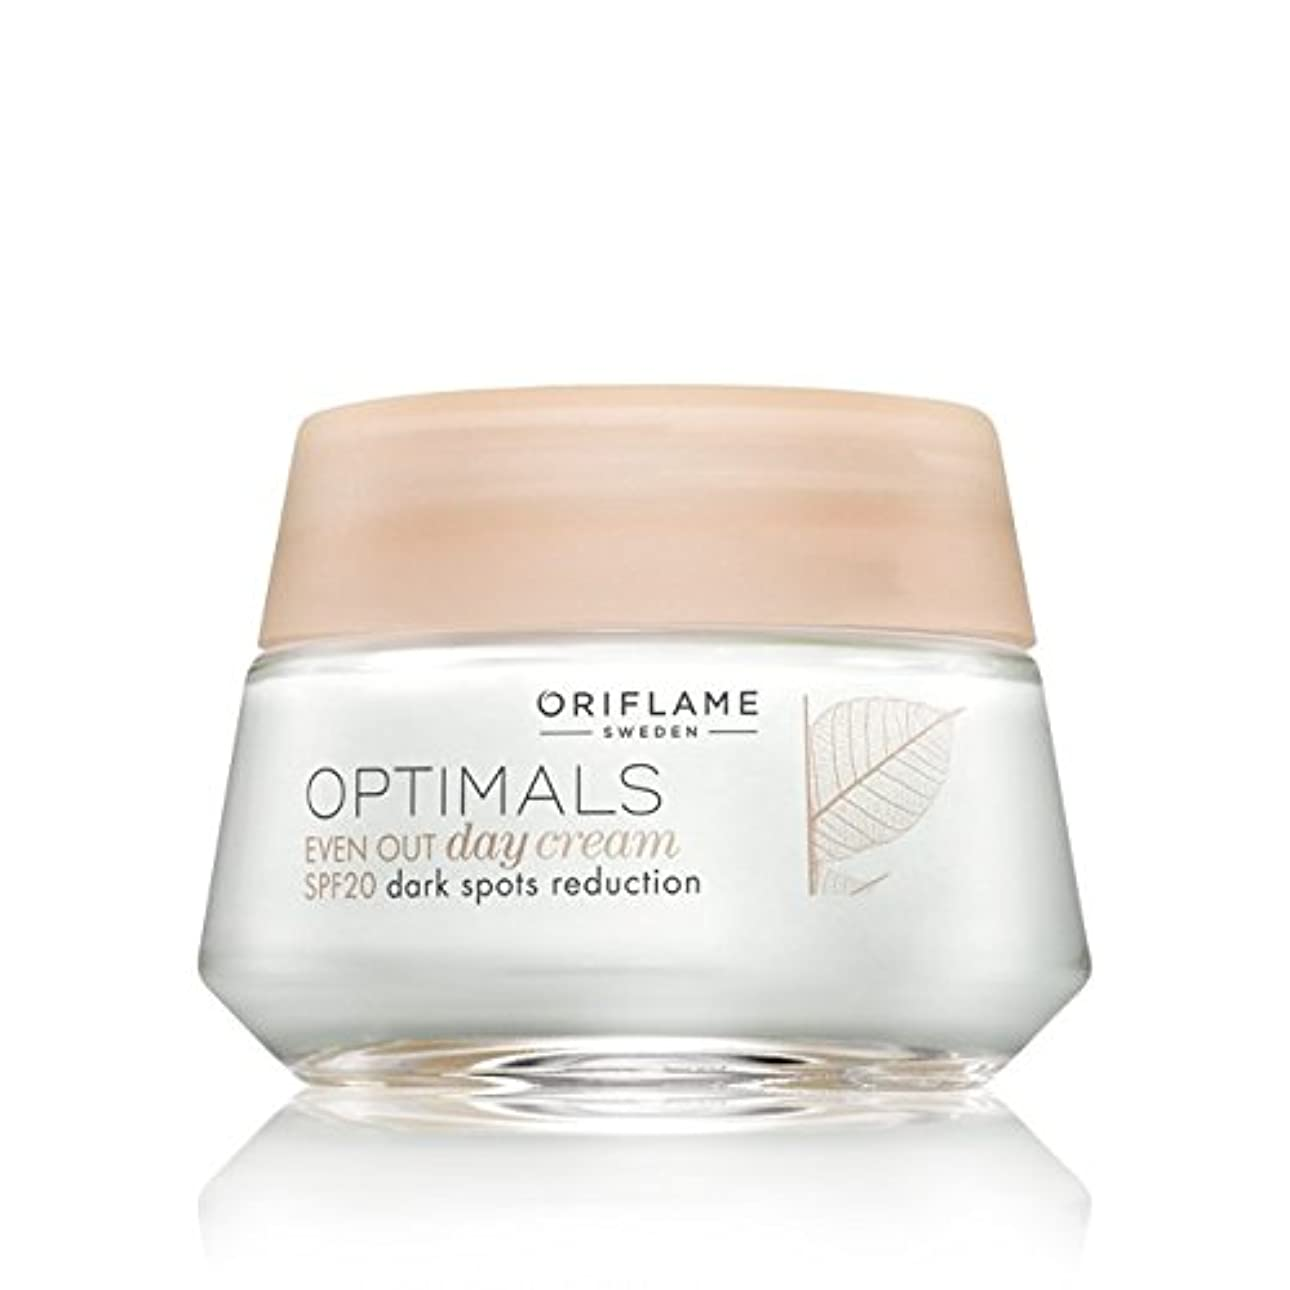 デコラティブ戦艦厄介なOriflame Optimals SPF 20 Dark Spot Reduction Even Out Day Cream, 50ml